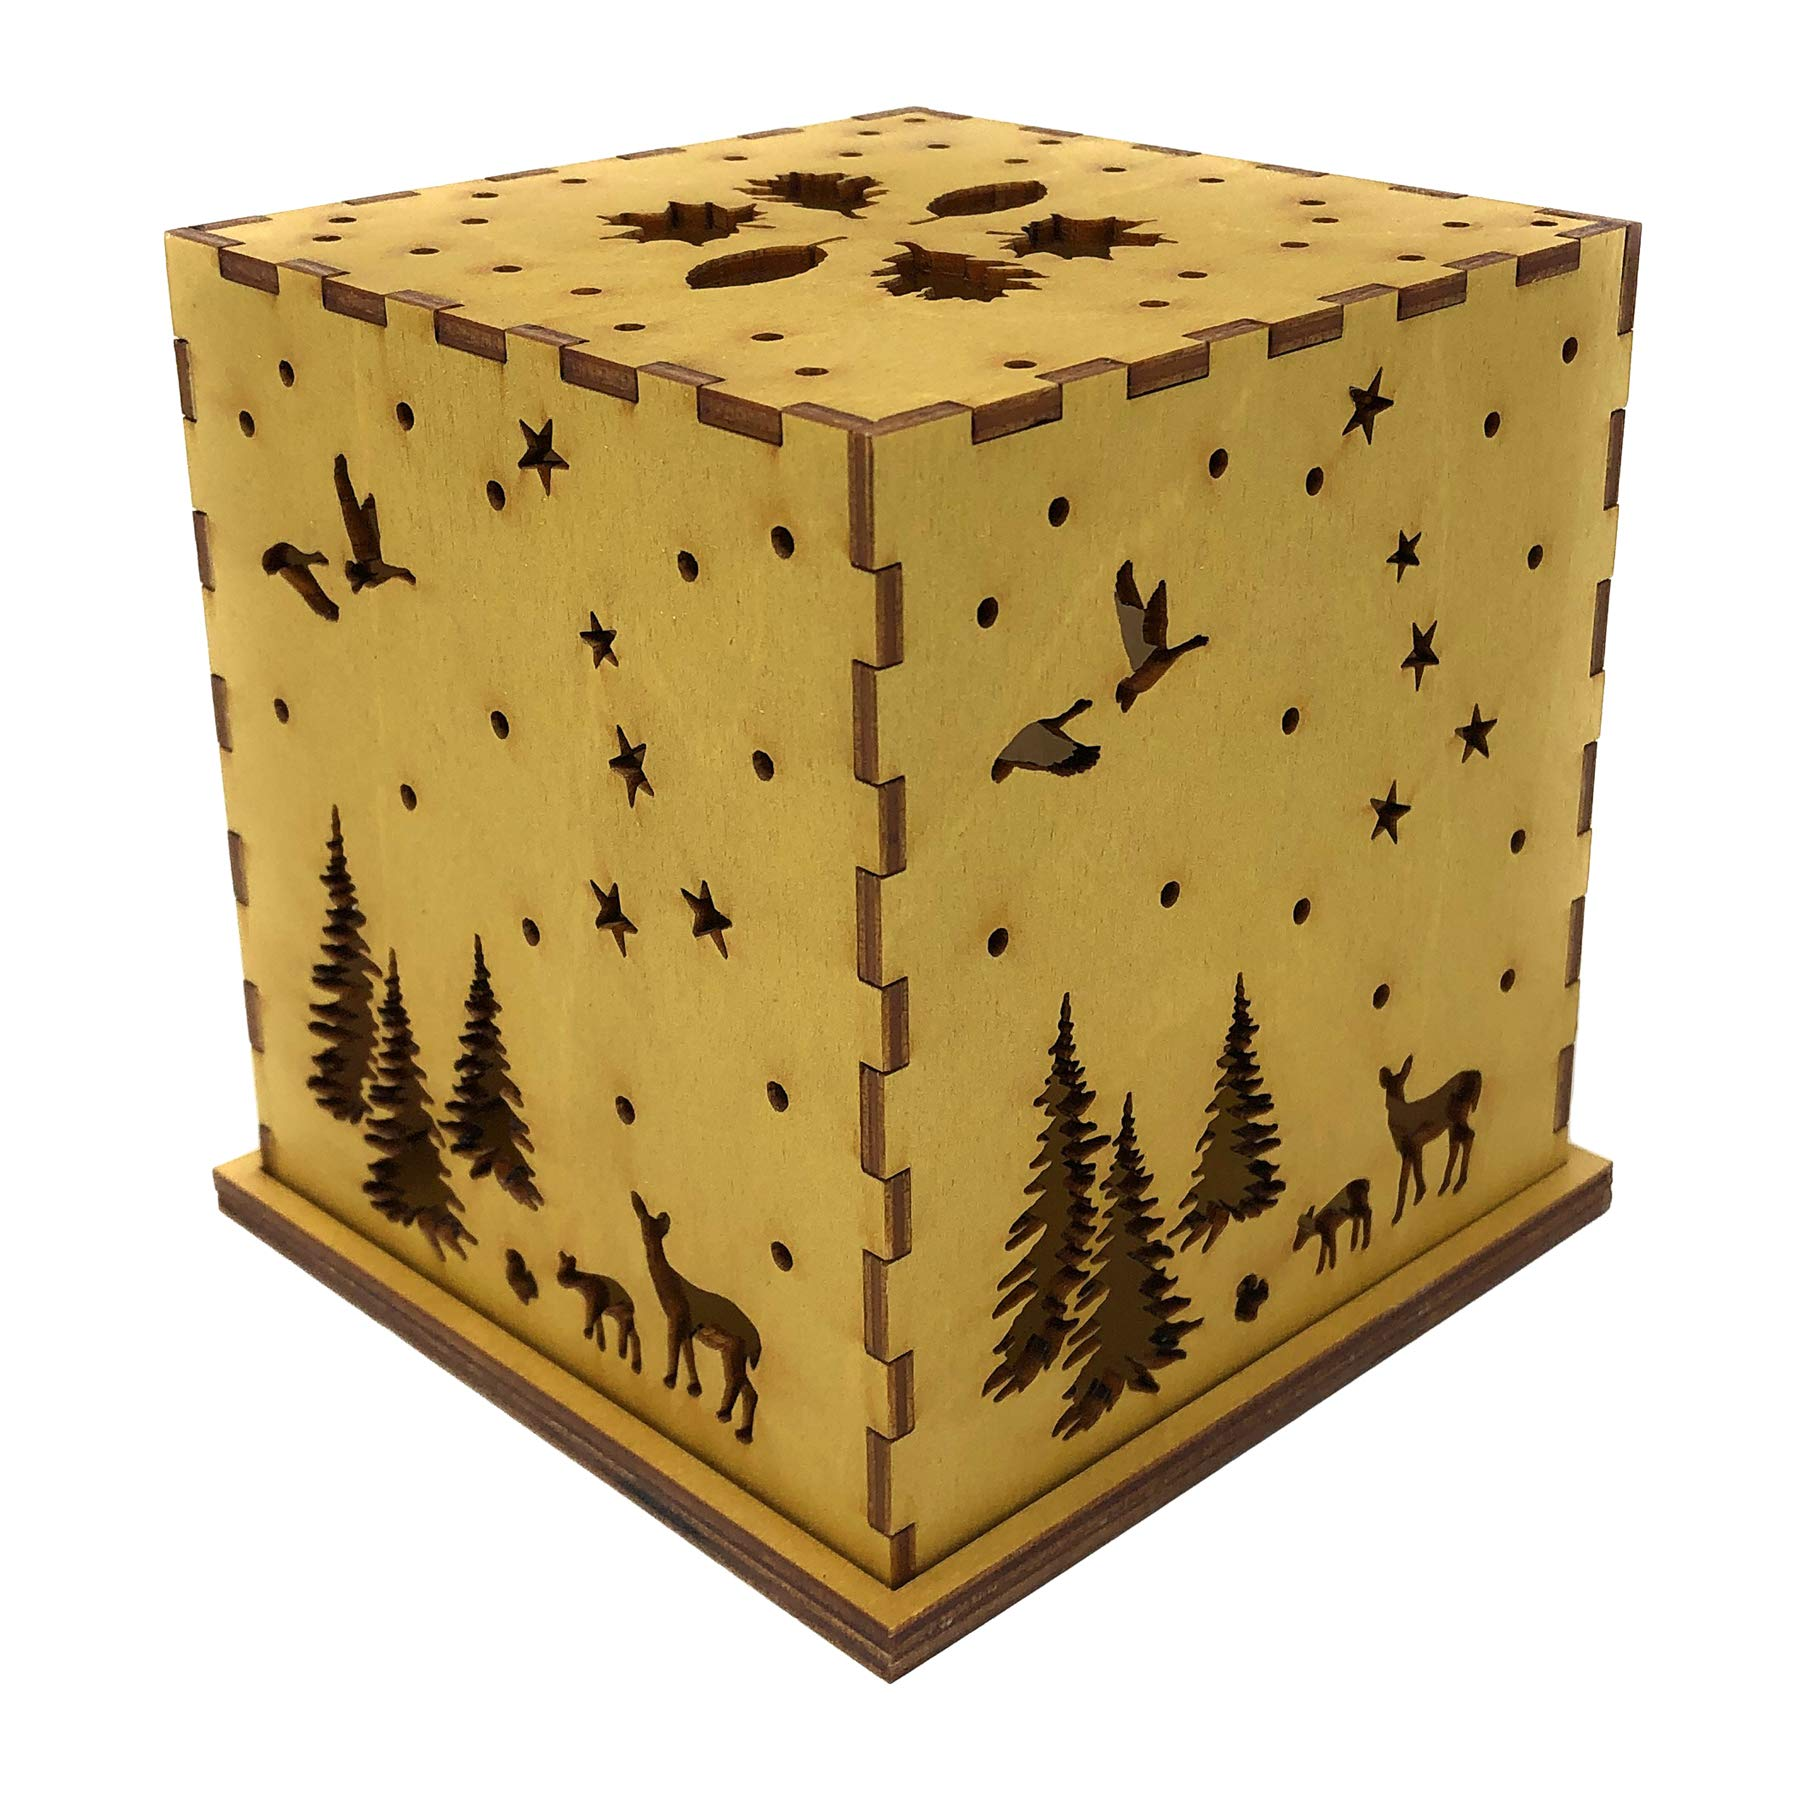 Doles Orchard Woodlands 4.5-inch Laser-Cut Luminary with LED Tealight, Gold